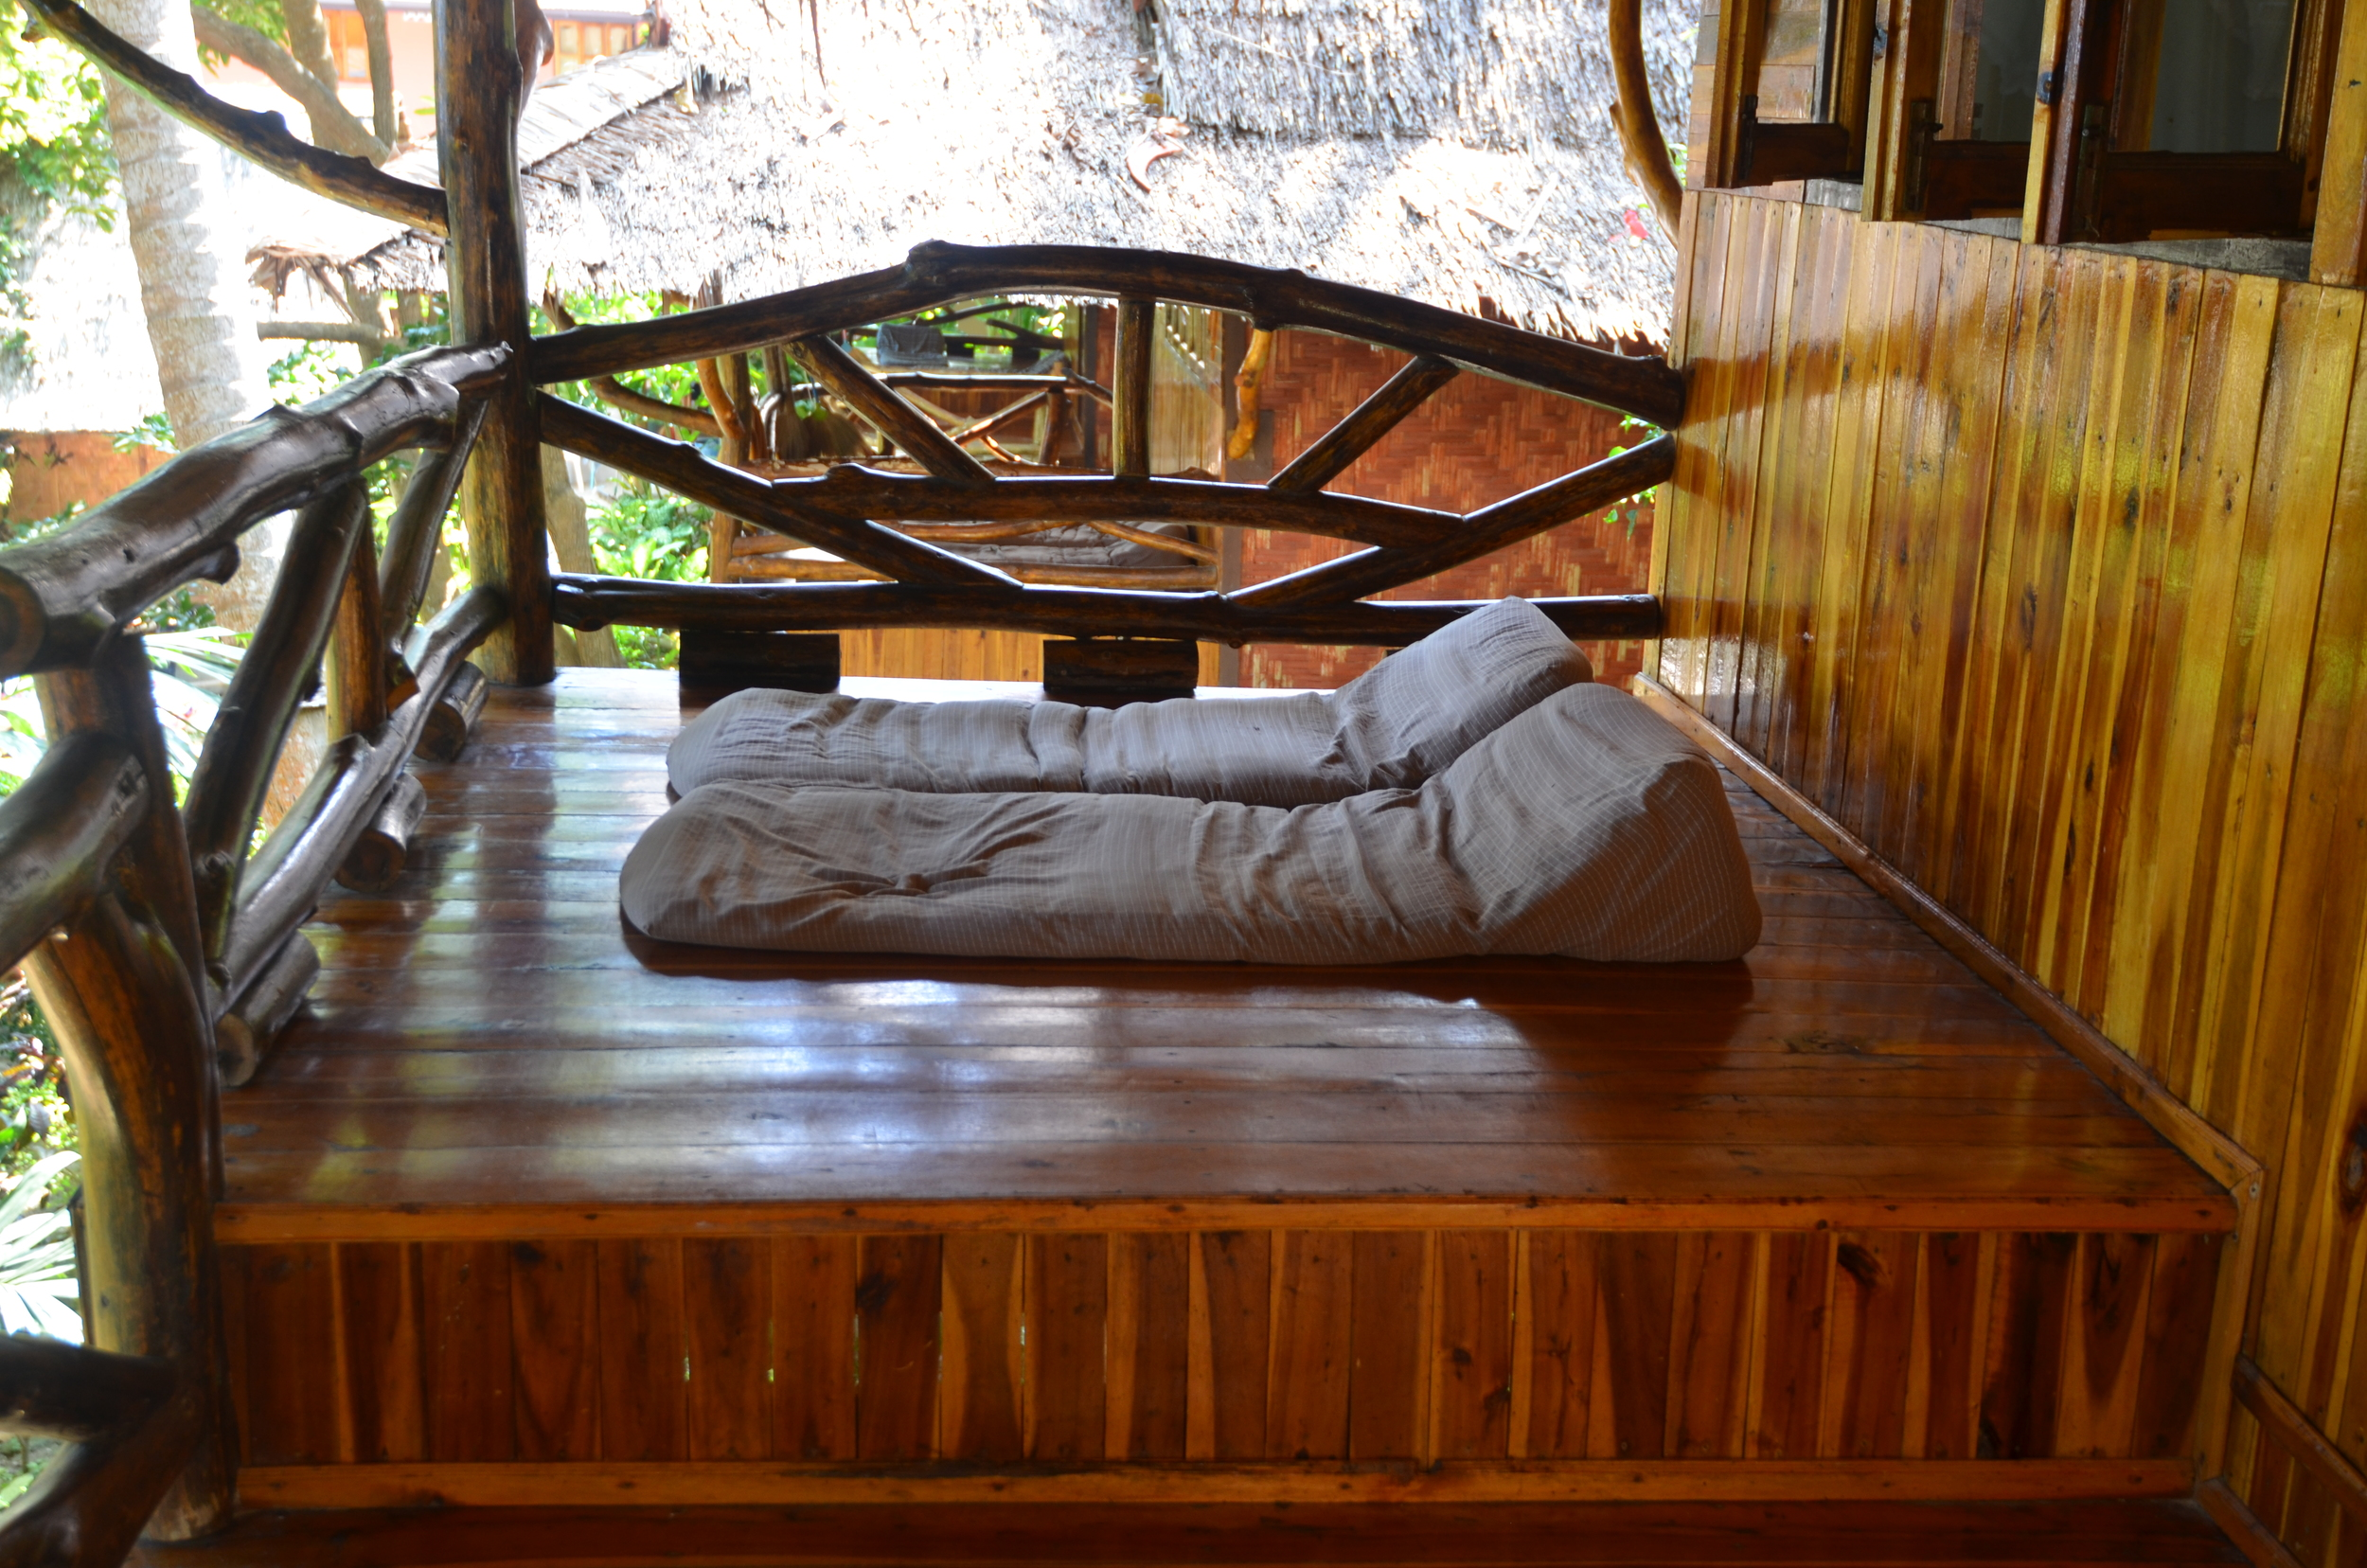 The porch of our bungalow... the perfect place to read